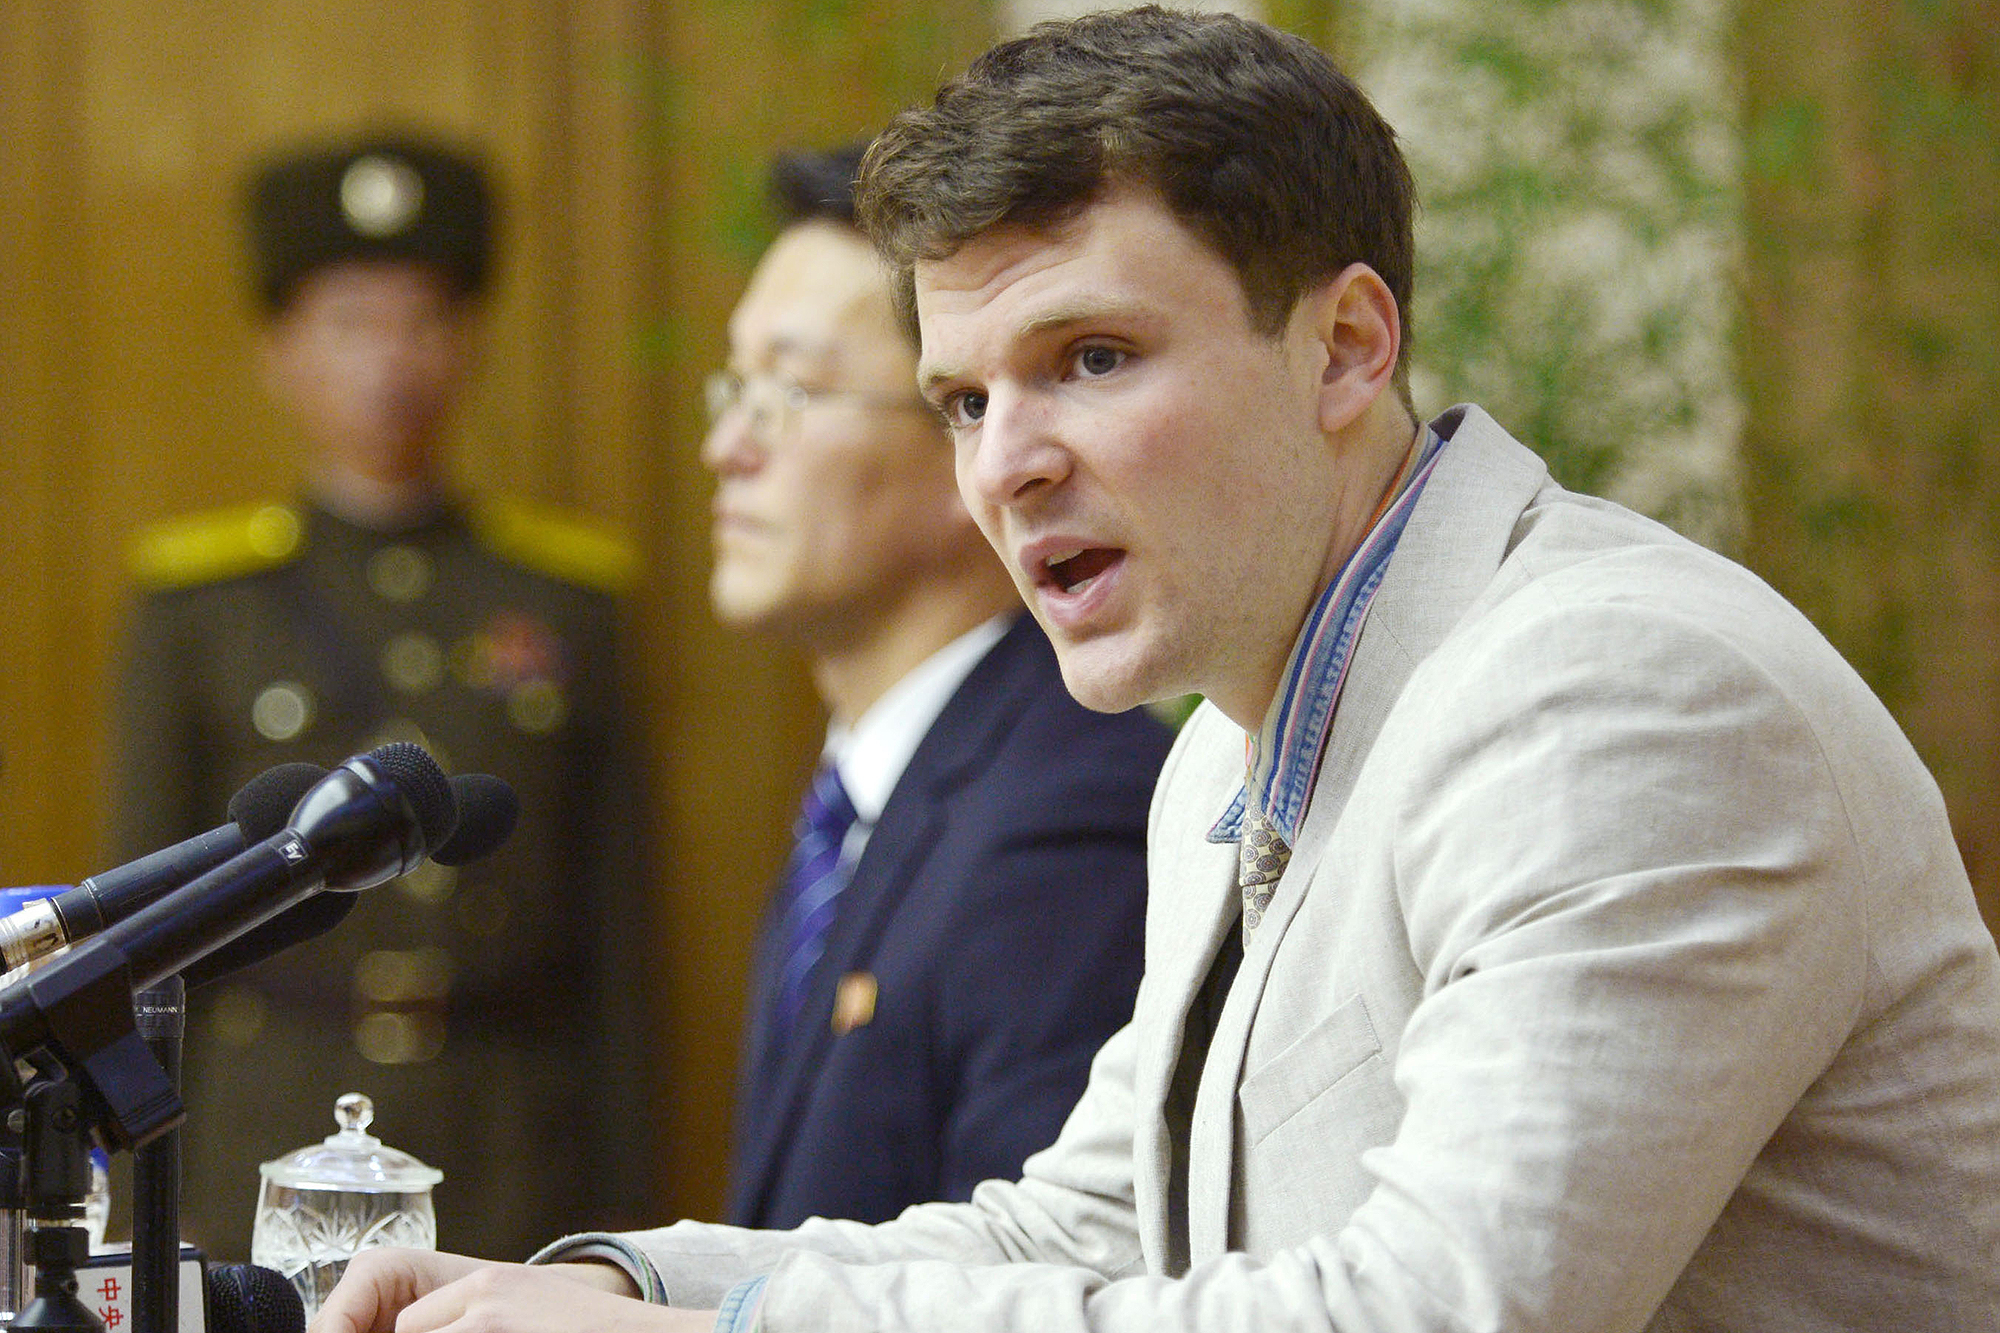 Detained U.S. student apologizes at press conference